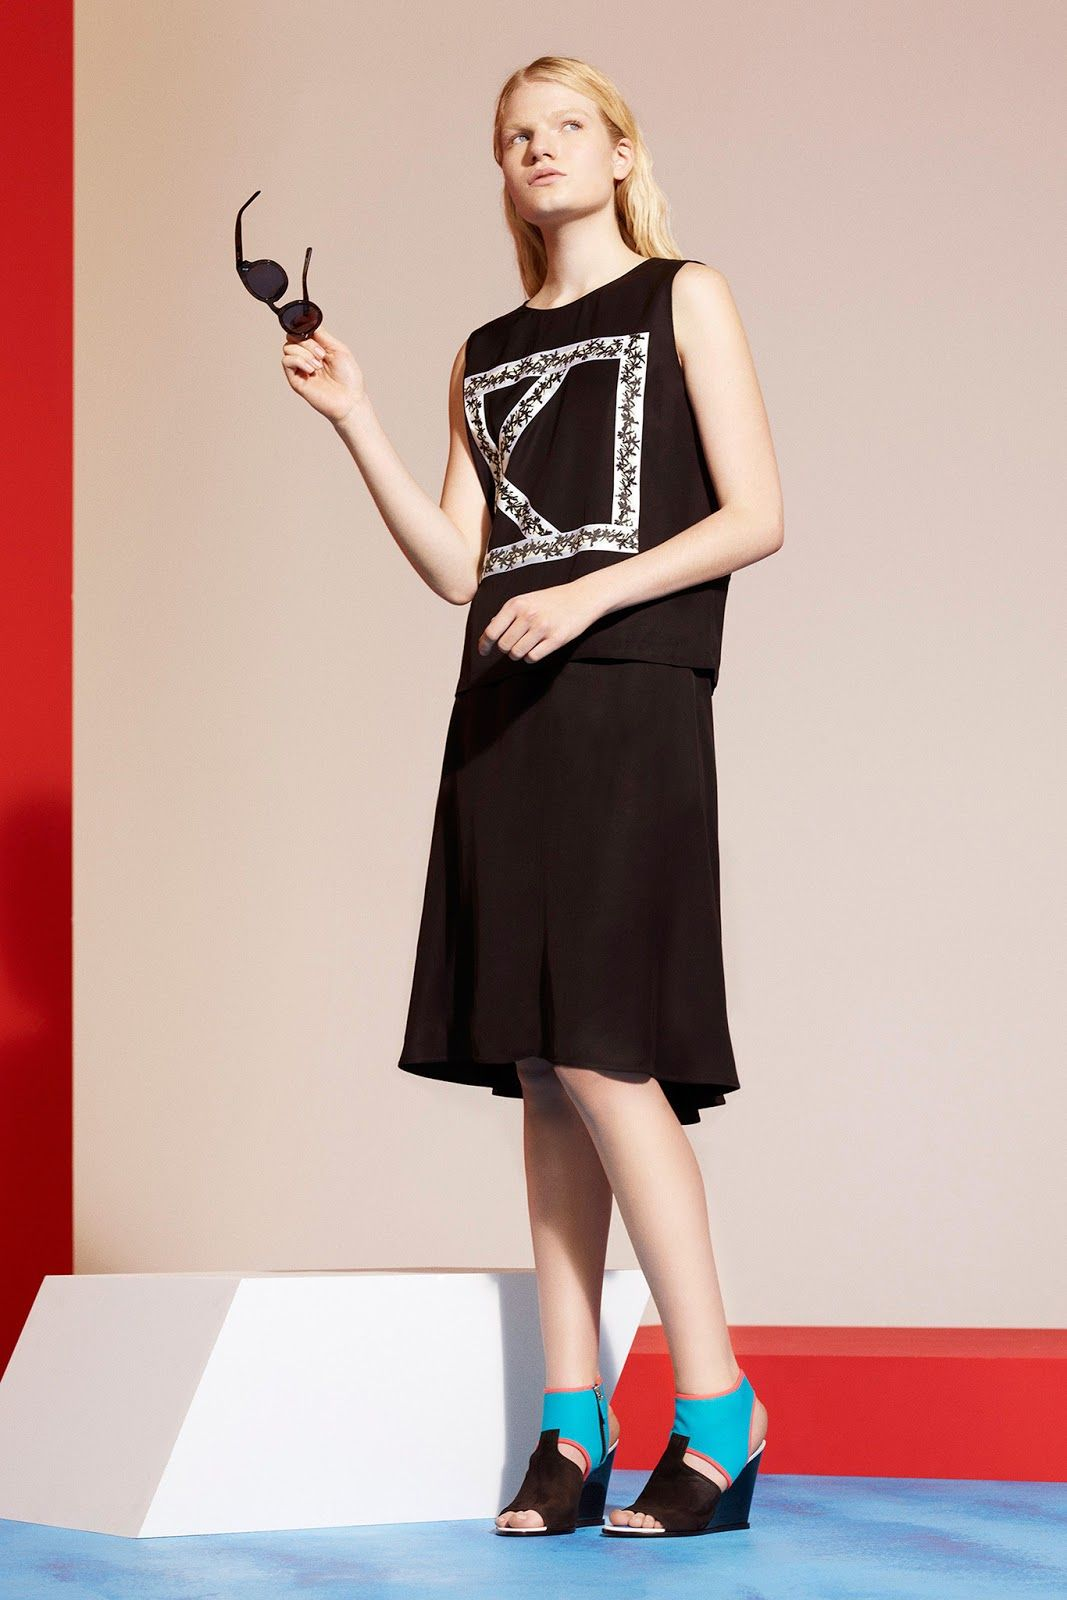 eleonora baumann and irene hiemstra for kenzo resort 2014 | visual optimism; fashion editorials, shows, campaigns & more!